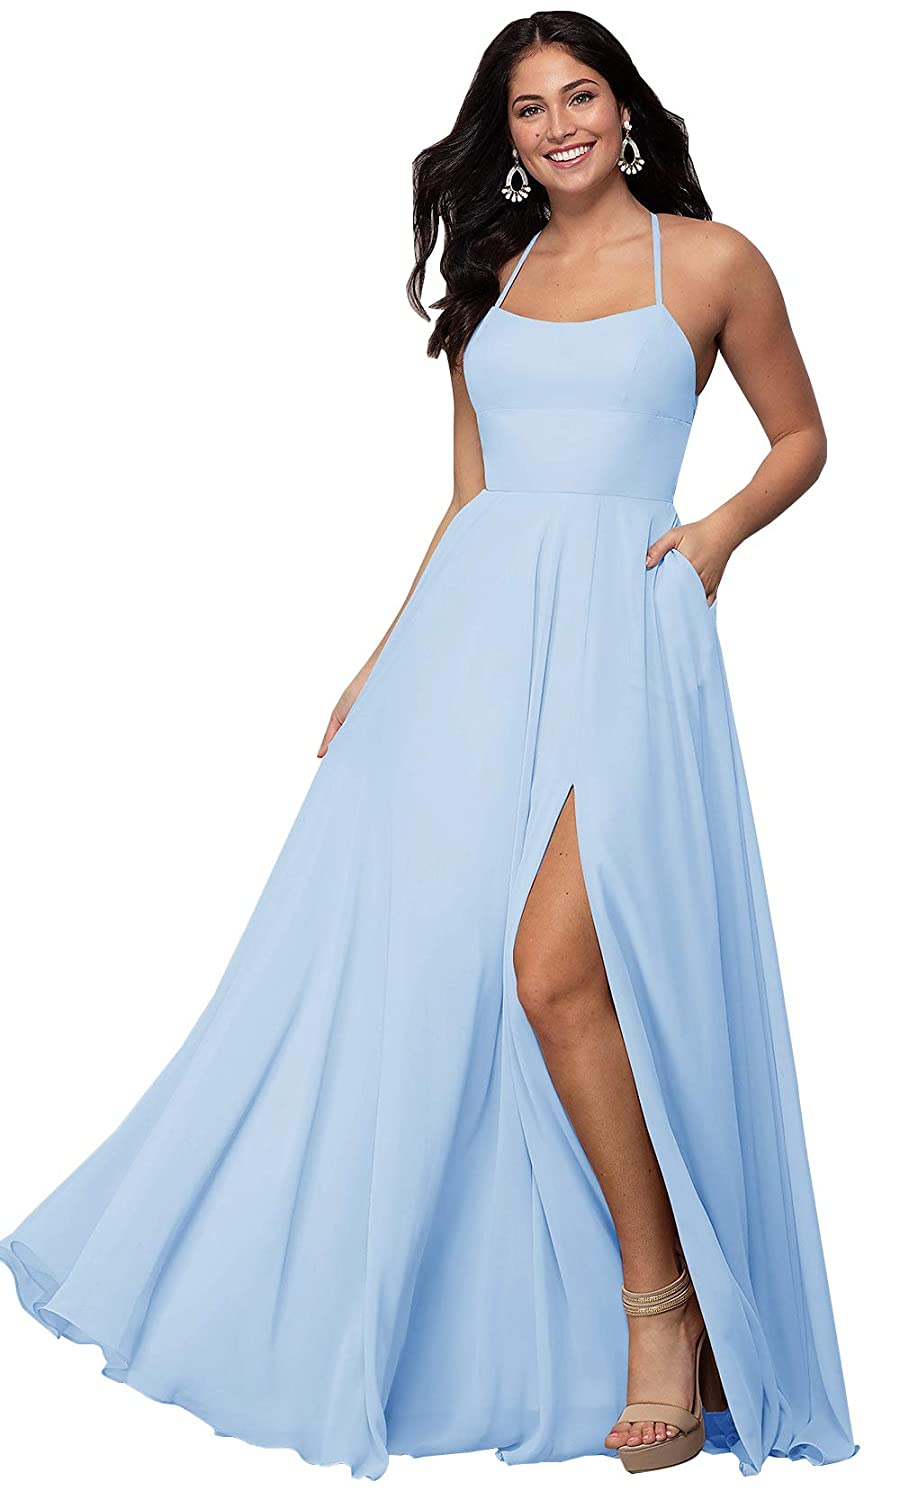 7680611597 Women's Criss Cross Back Chiffon Halter O-Neck Bridesmaid Dresses Side Slit  Long Formal Prom Gown with Pockets